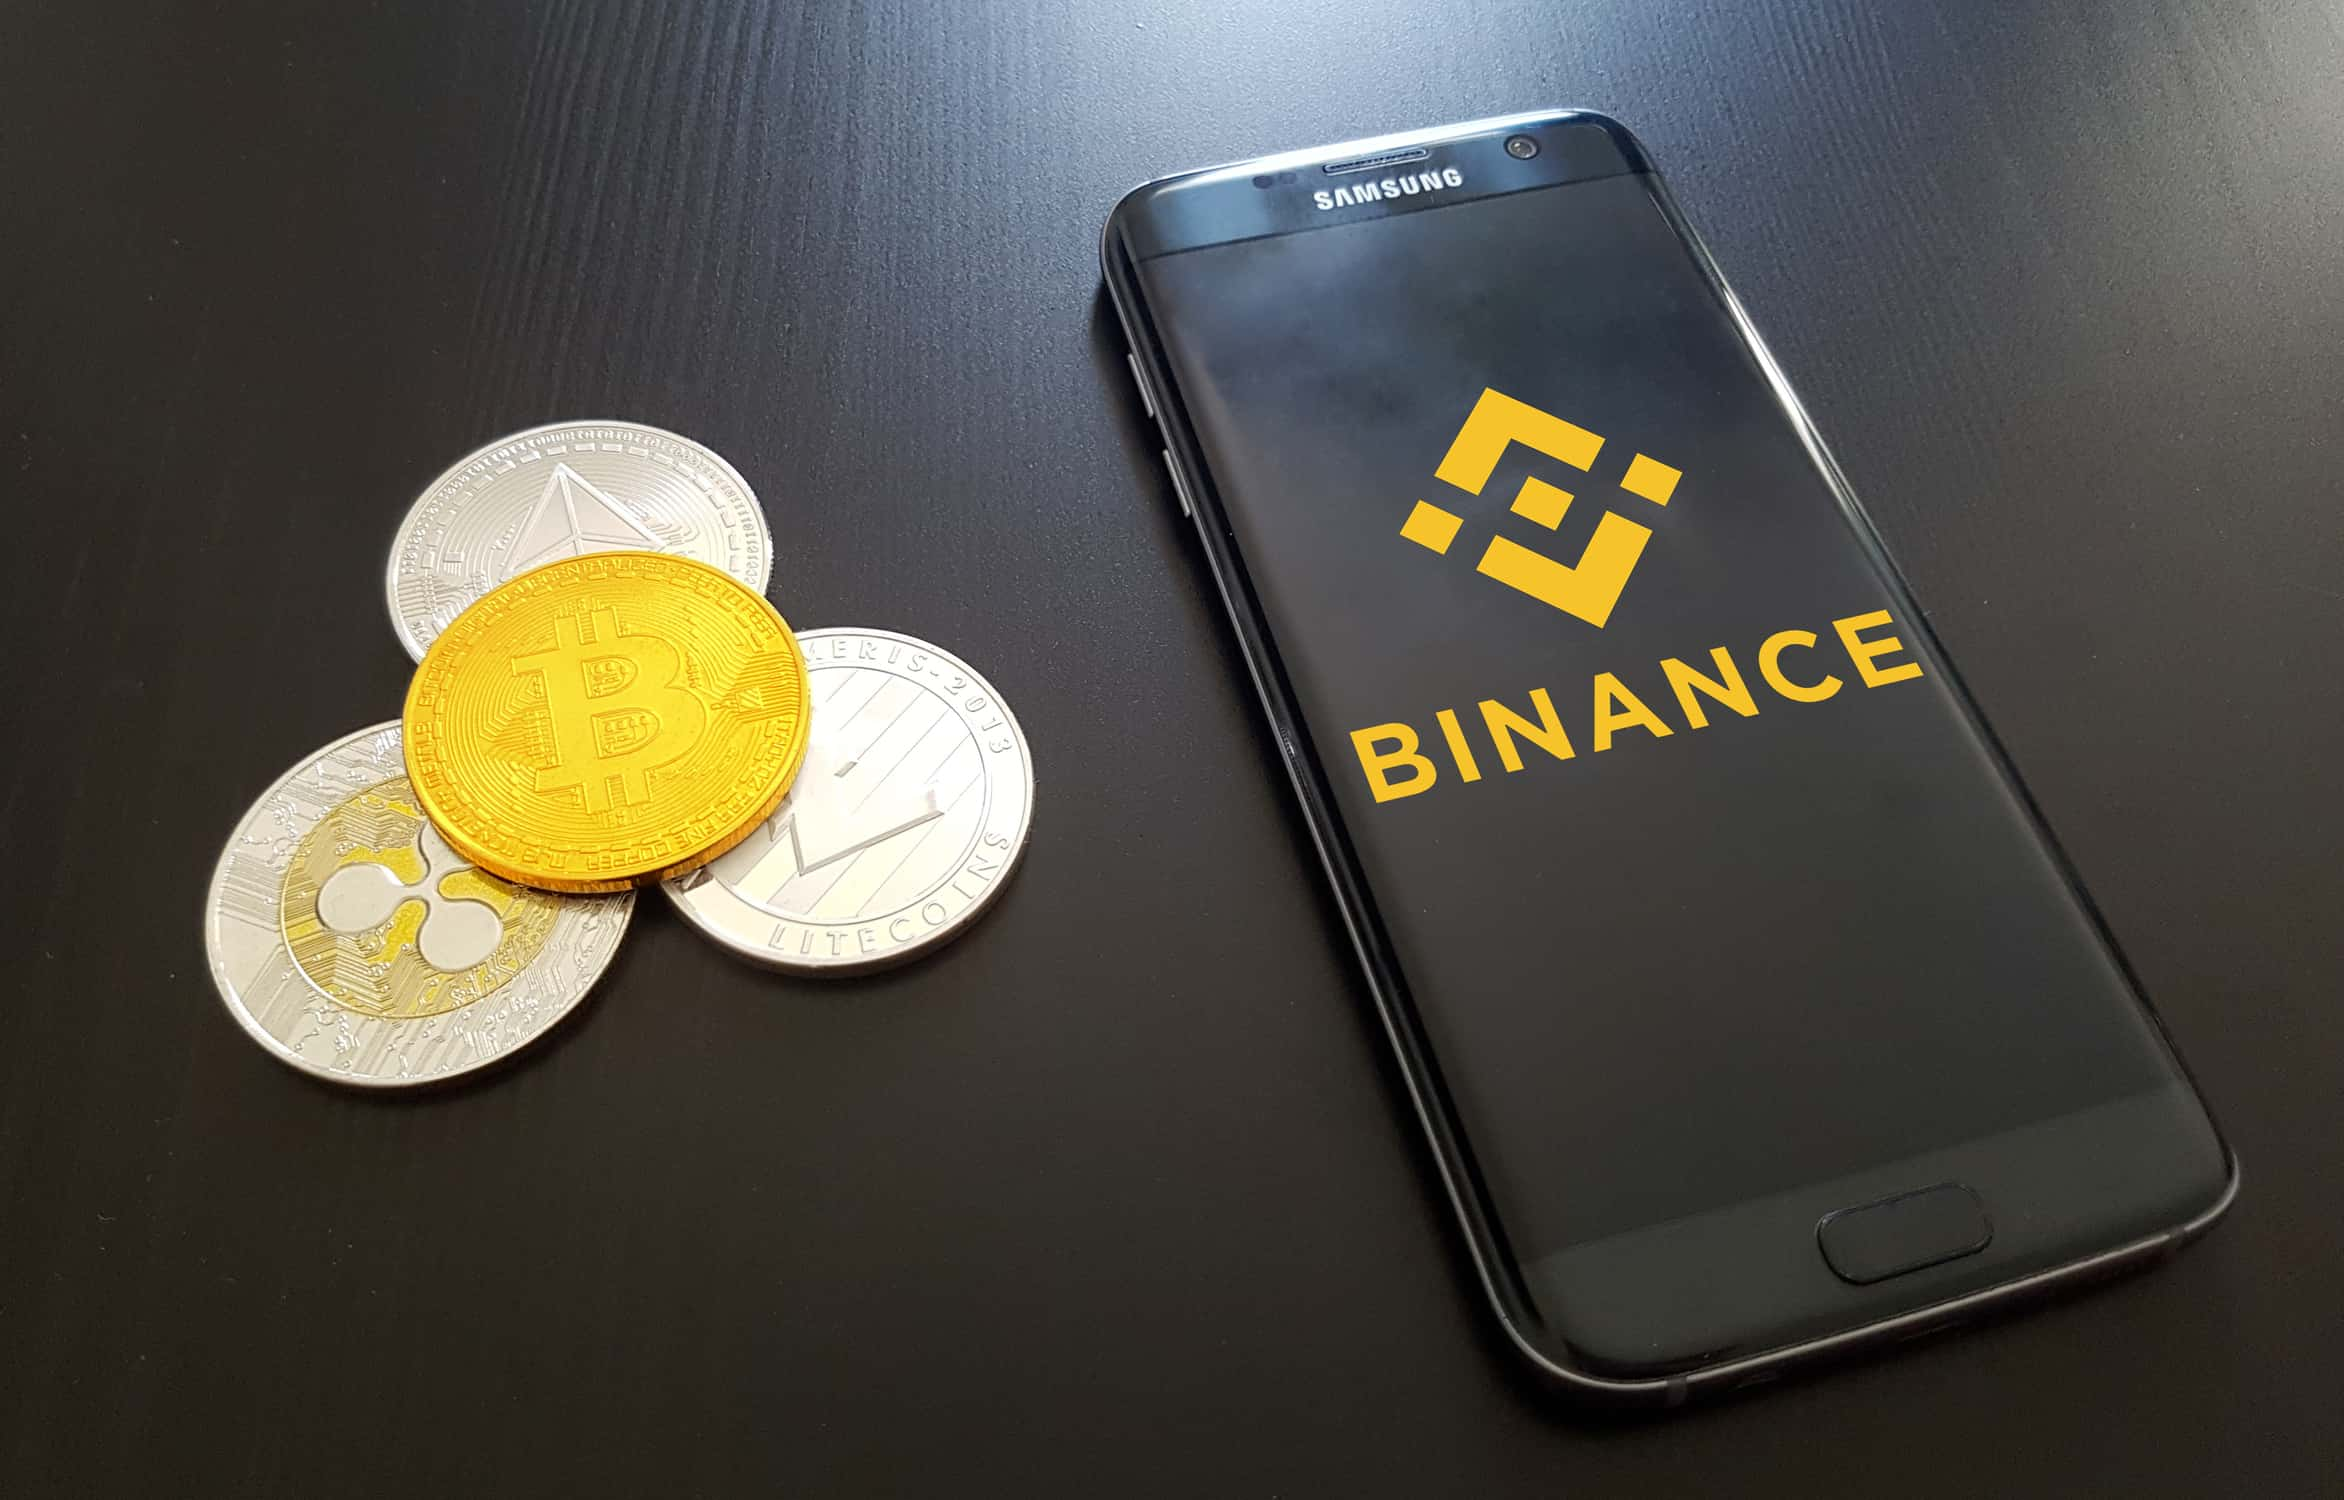 Binance Announce Margin Trading & Futures Testnet, but How